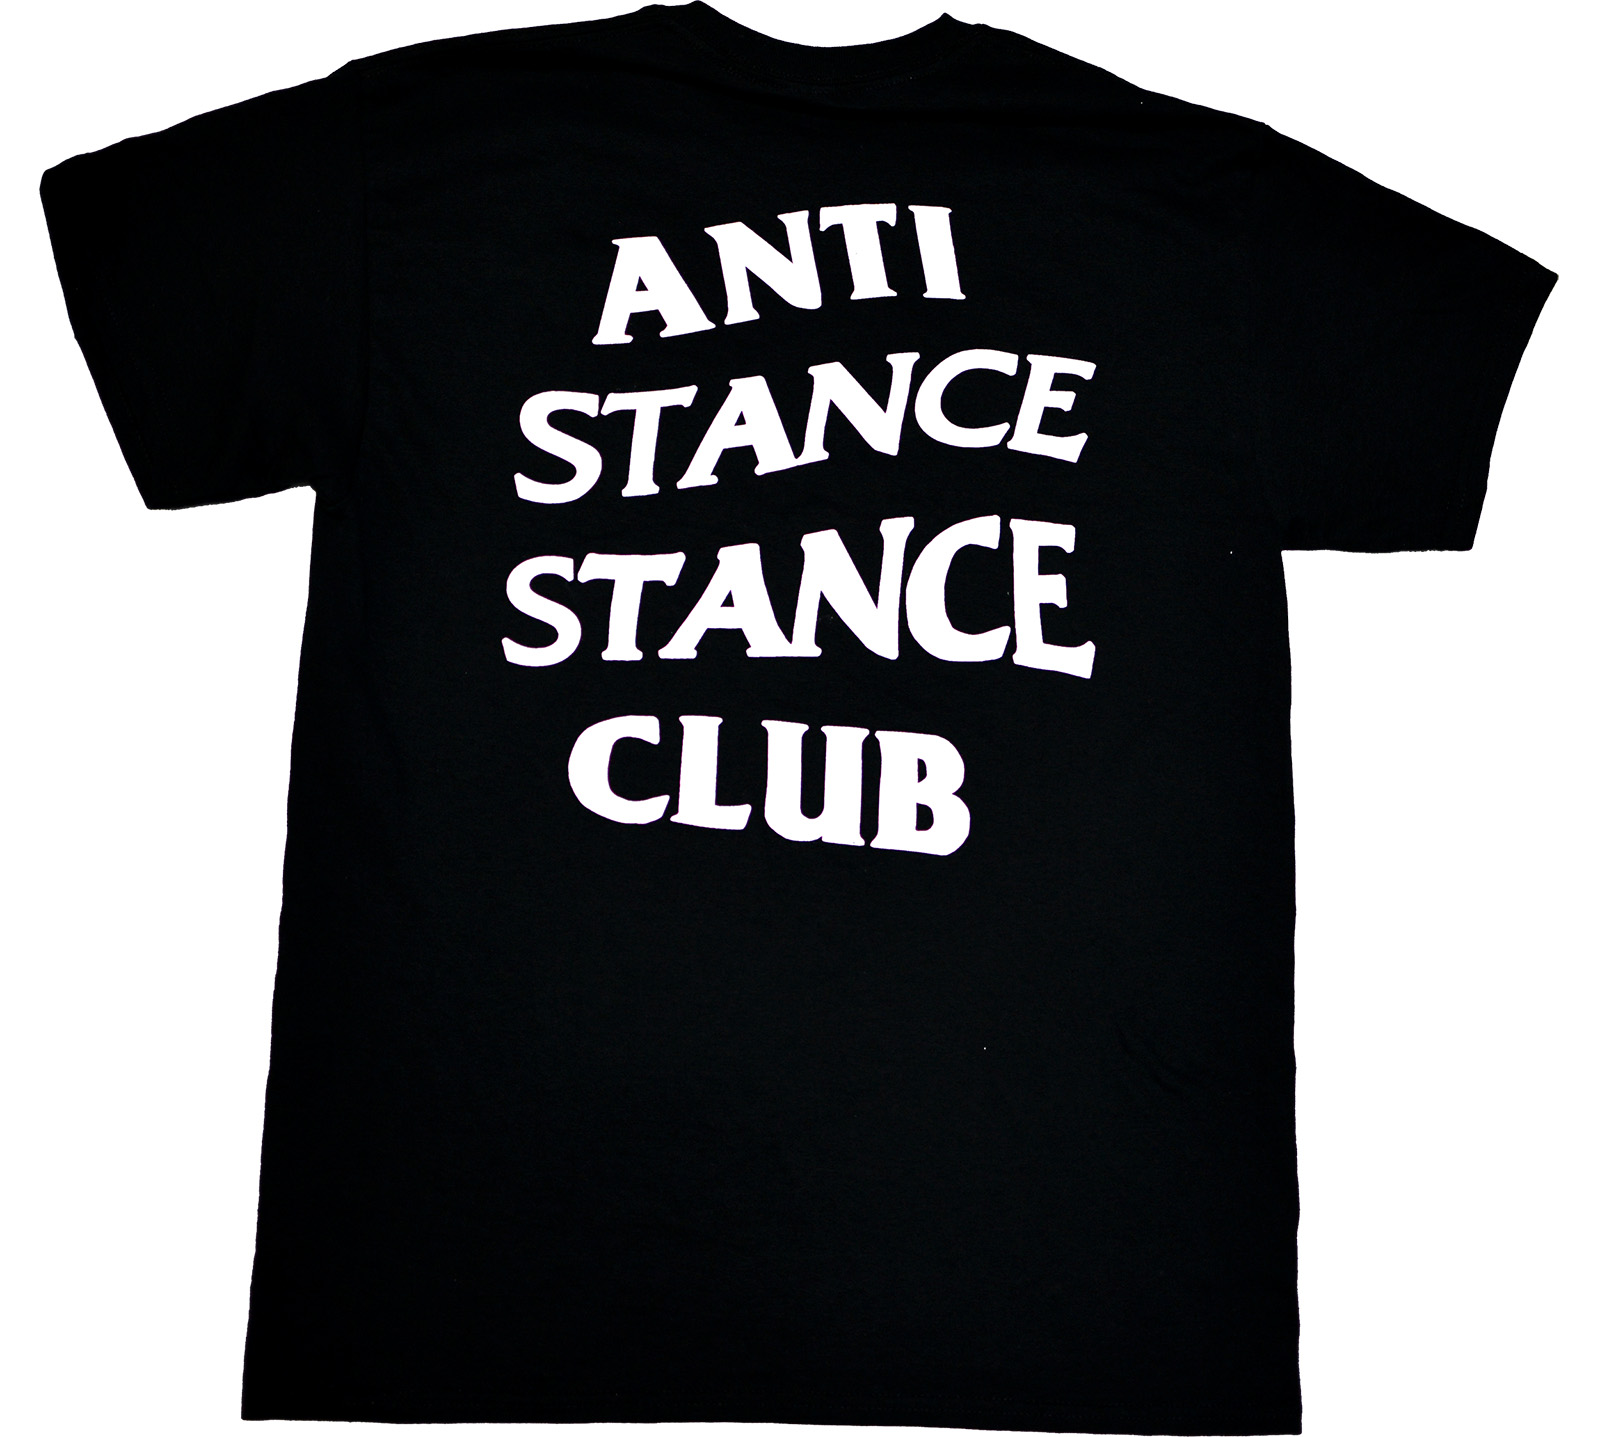 CARSHYPE Anti Stance Stance Club T Shirt